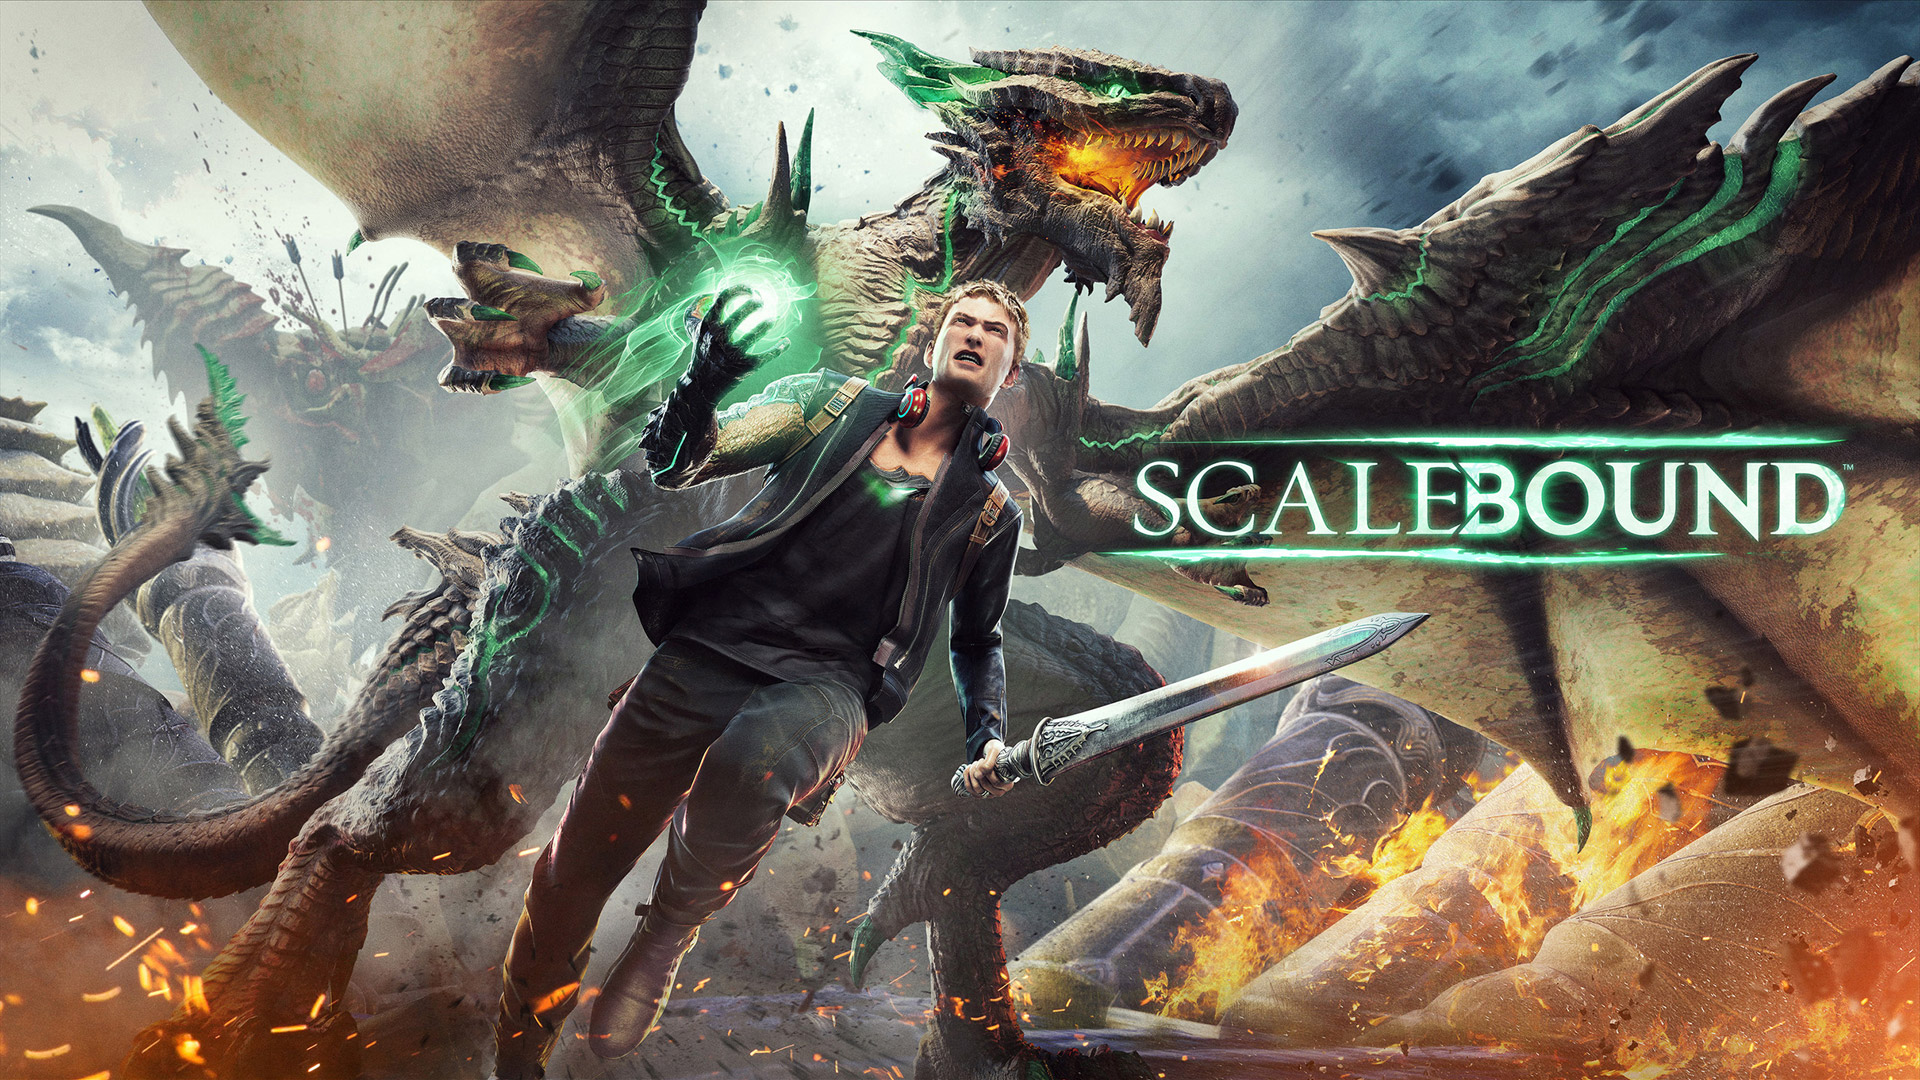 Scalebound Wallpaper in 1920x1080